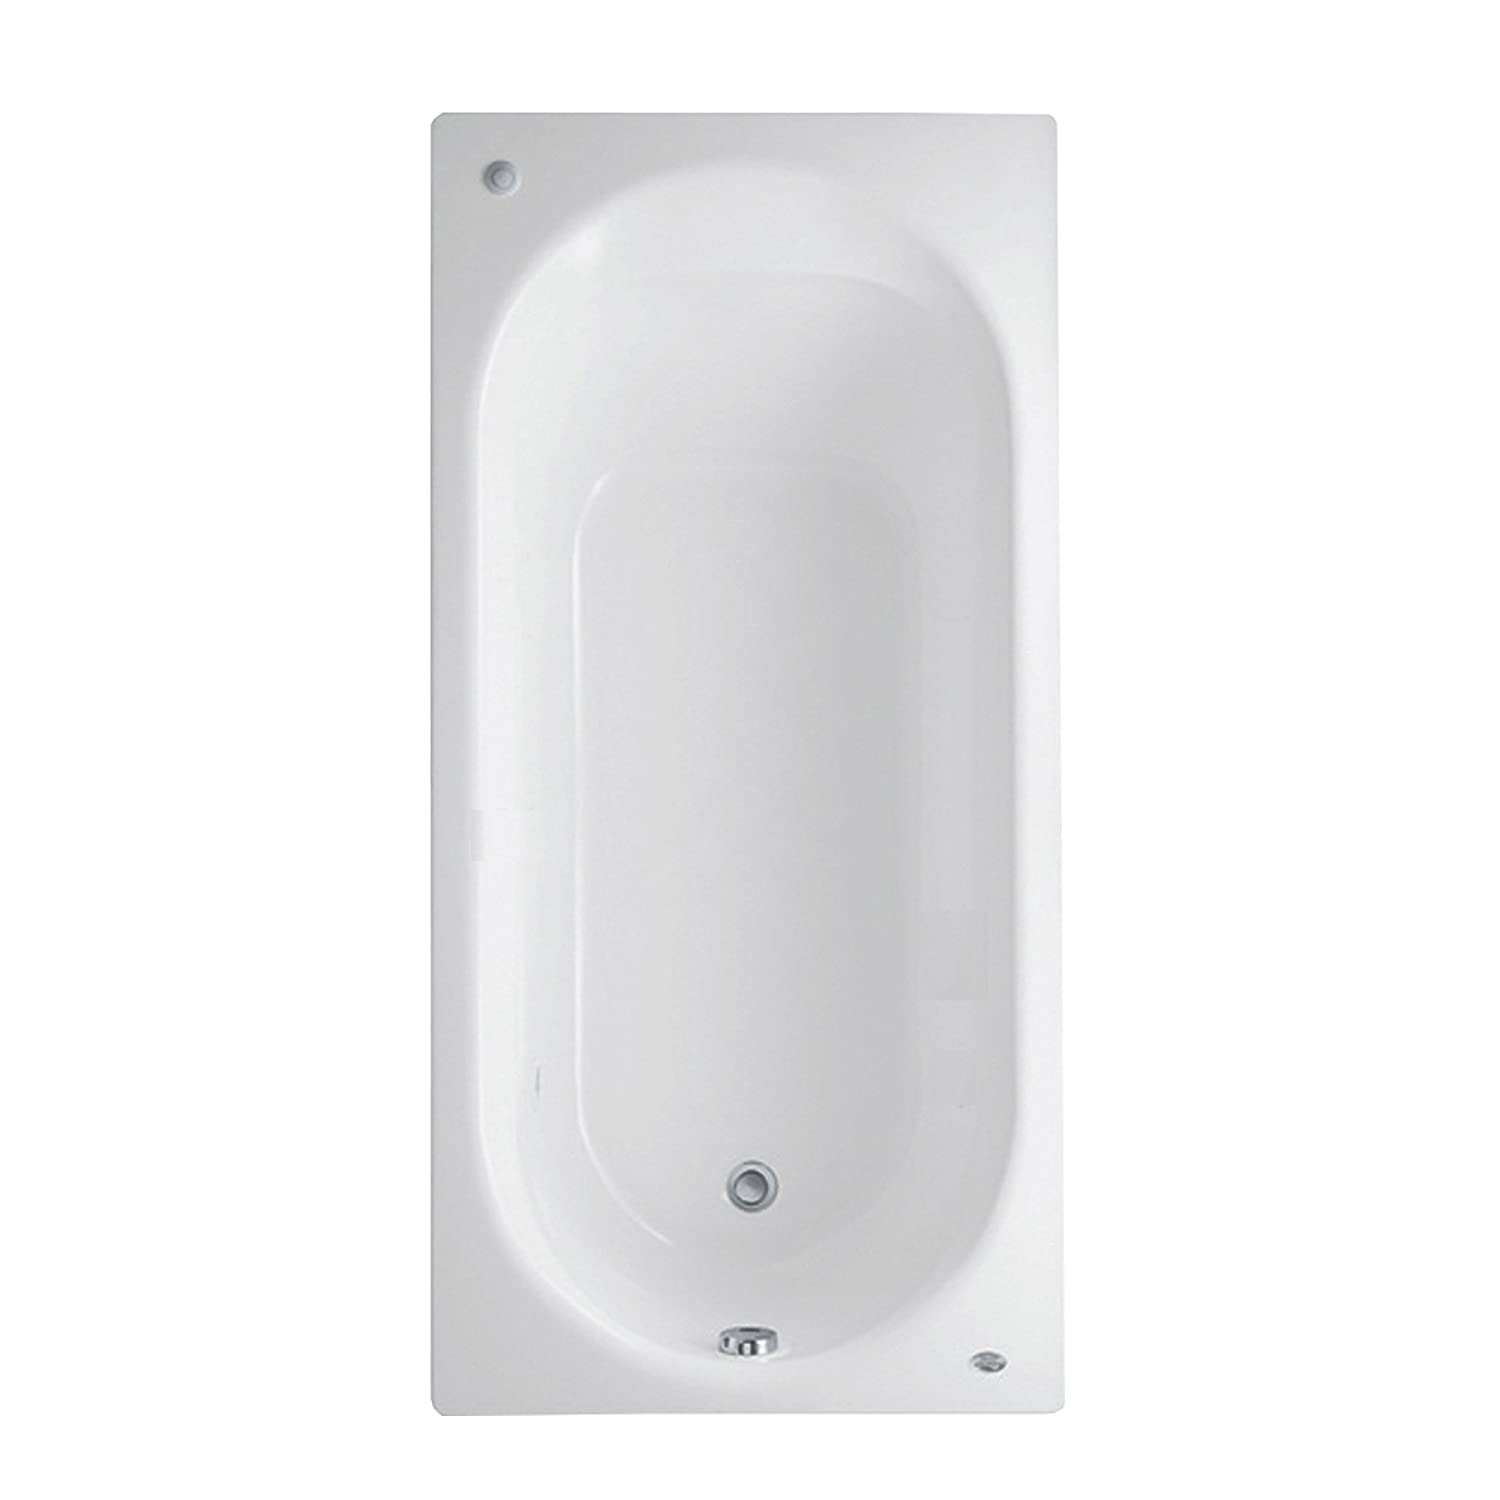 Exceptional American Standard 2470.002.020 Stratford 5 1/2 Feet Bath Tub, White   Drop  In Bathtubs   Amazon.com